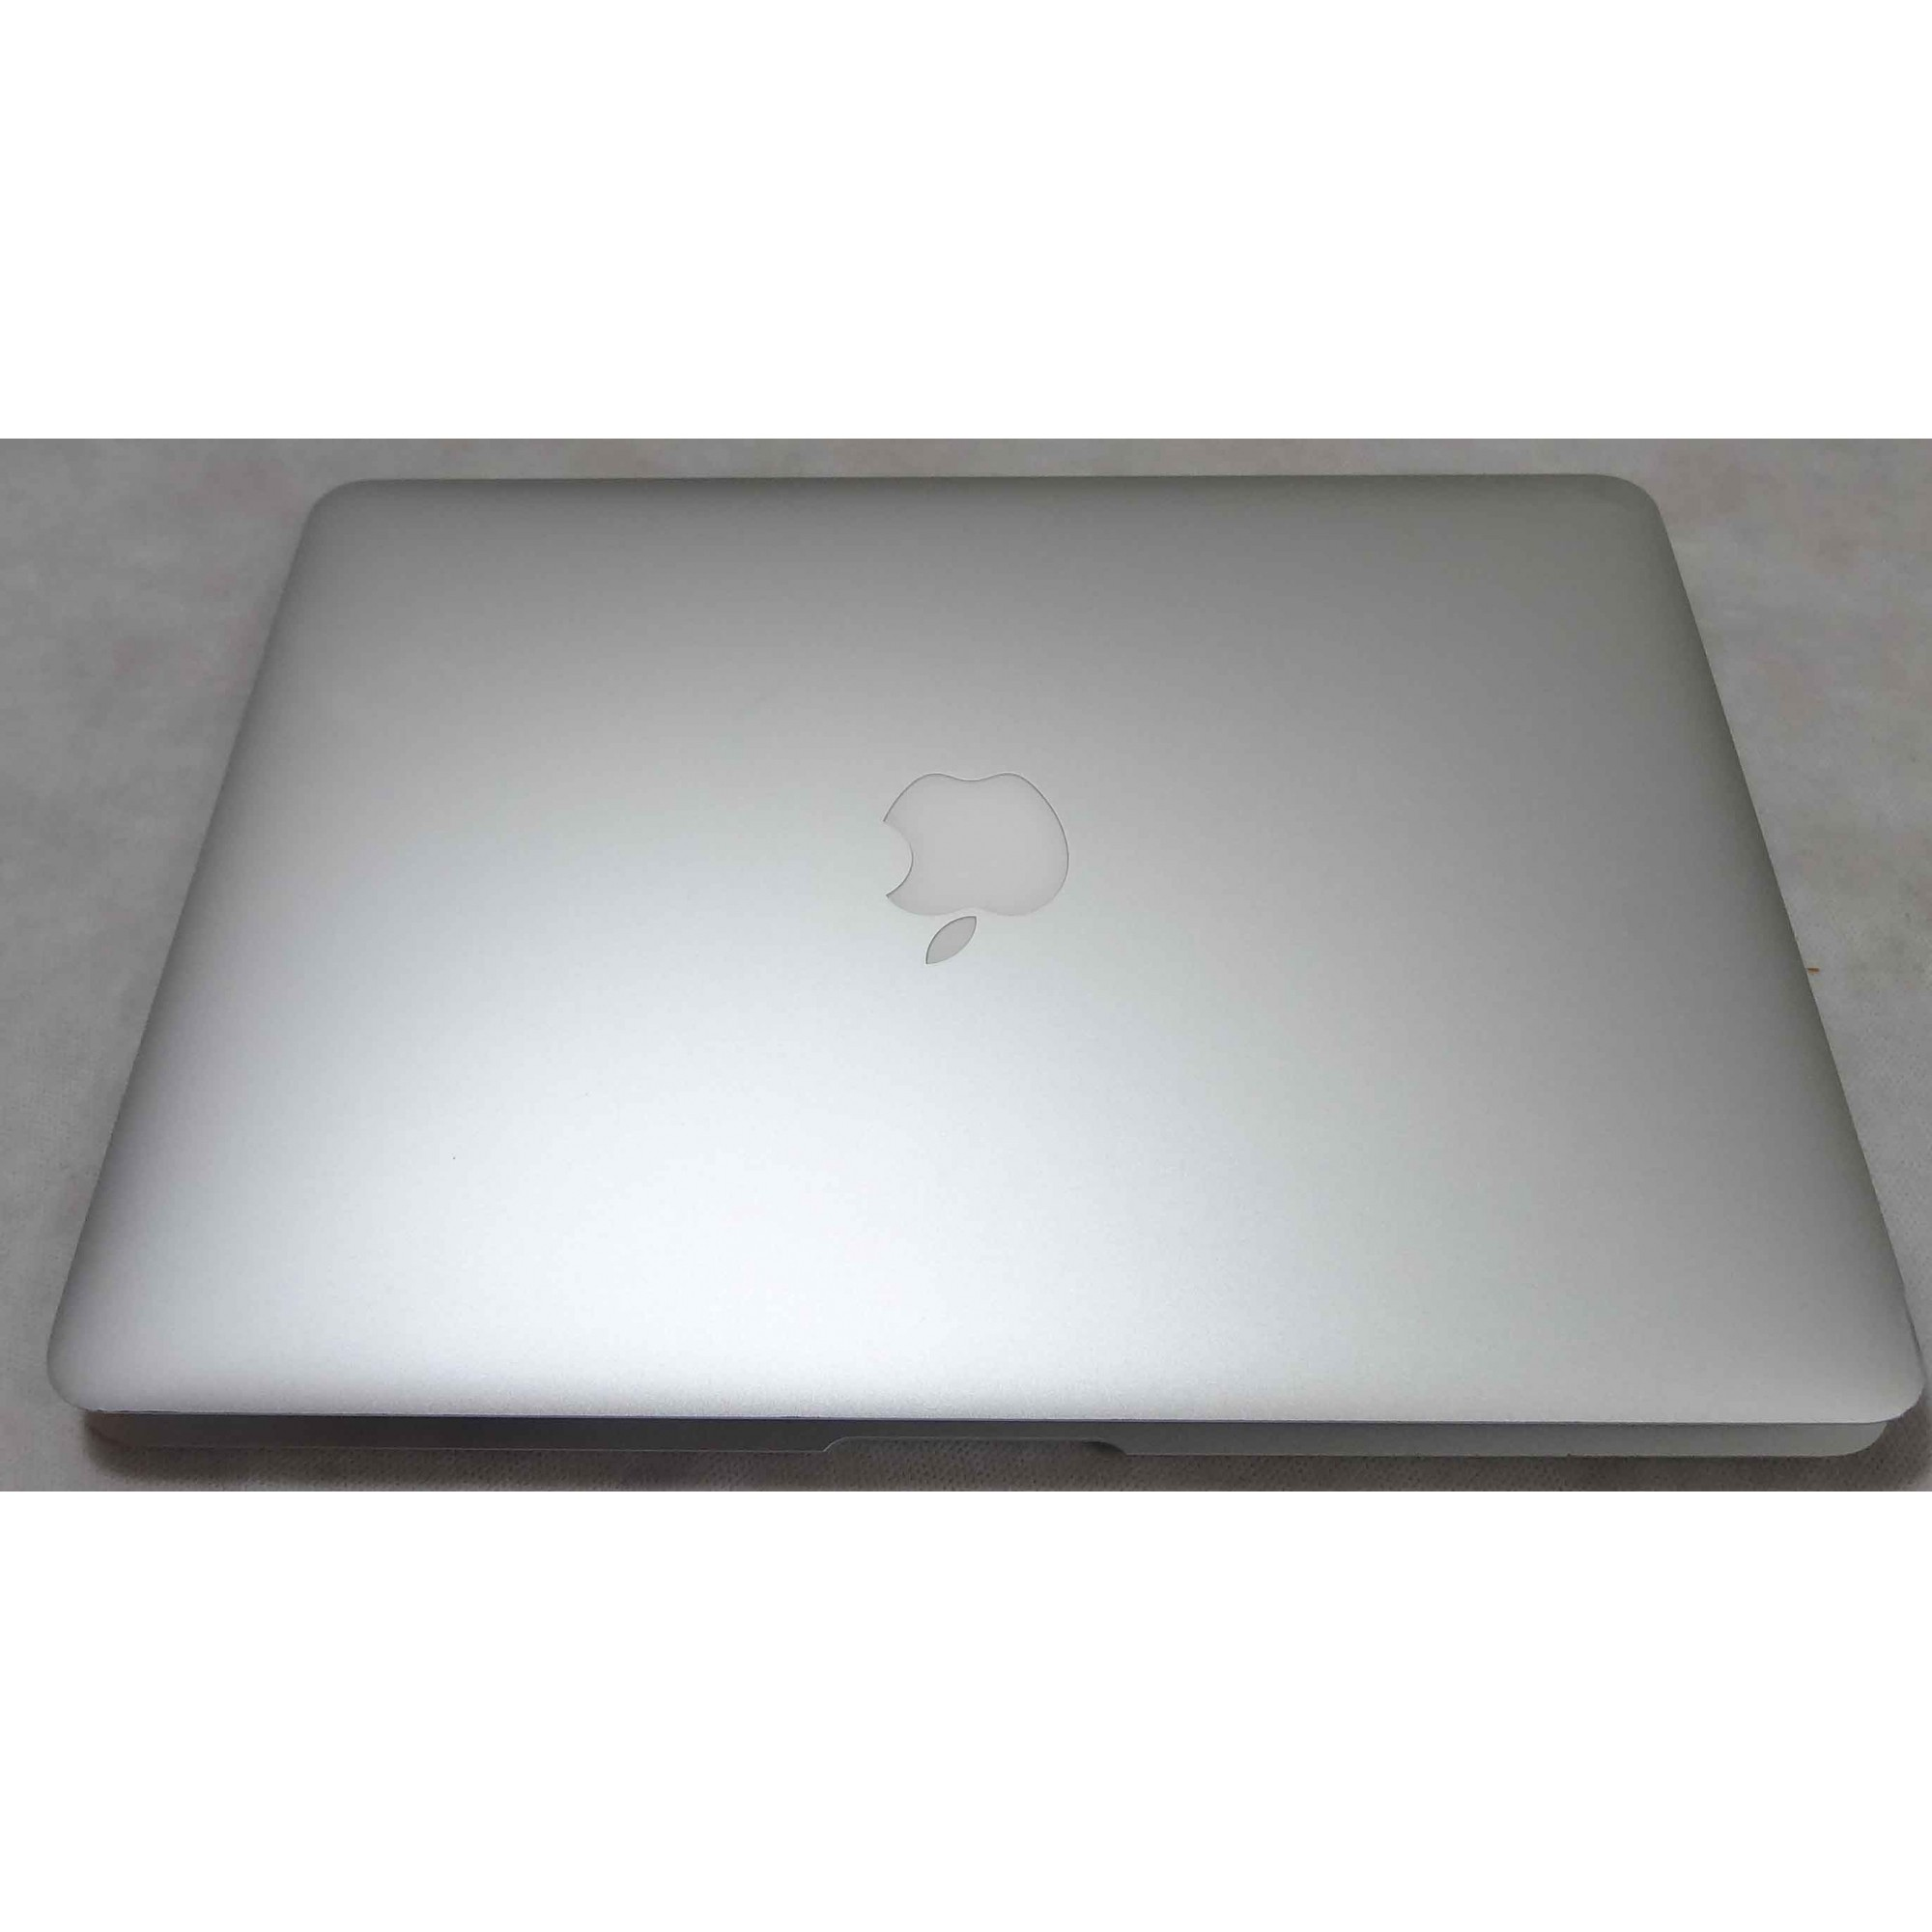 Macbook Air MJVE2LL/A 13.3'' Intel Core i5 1.6GHz 8GB SSD-256GB